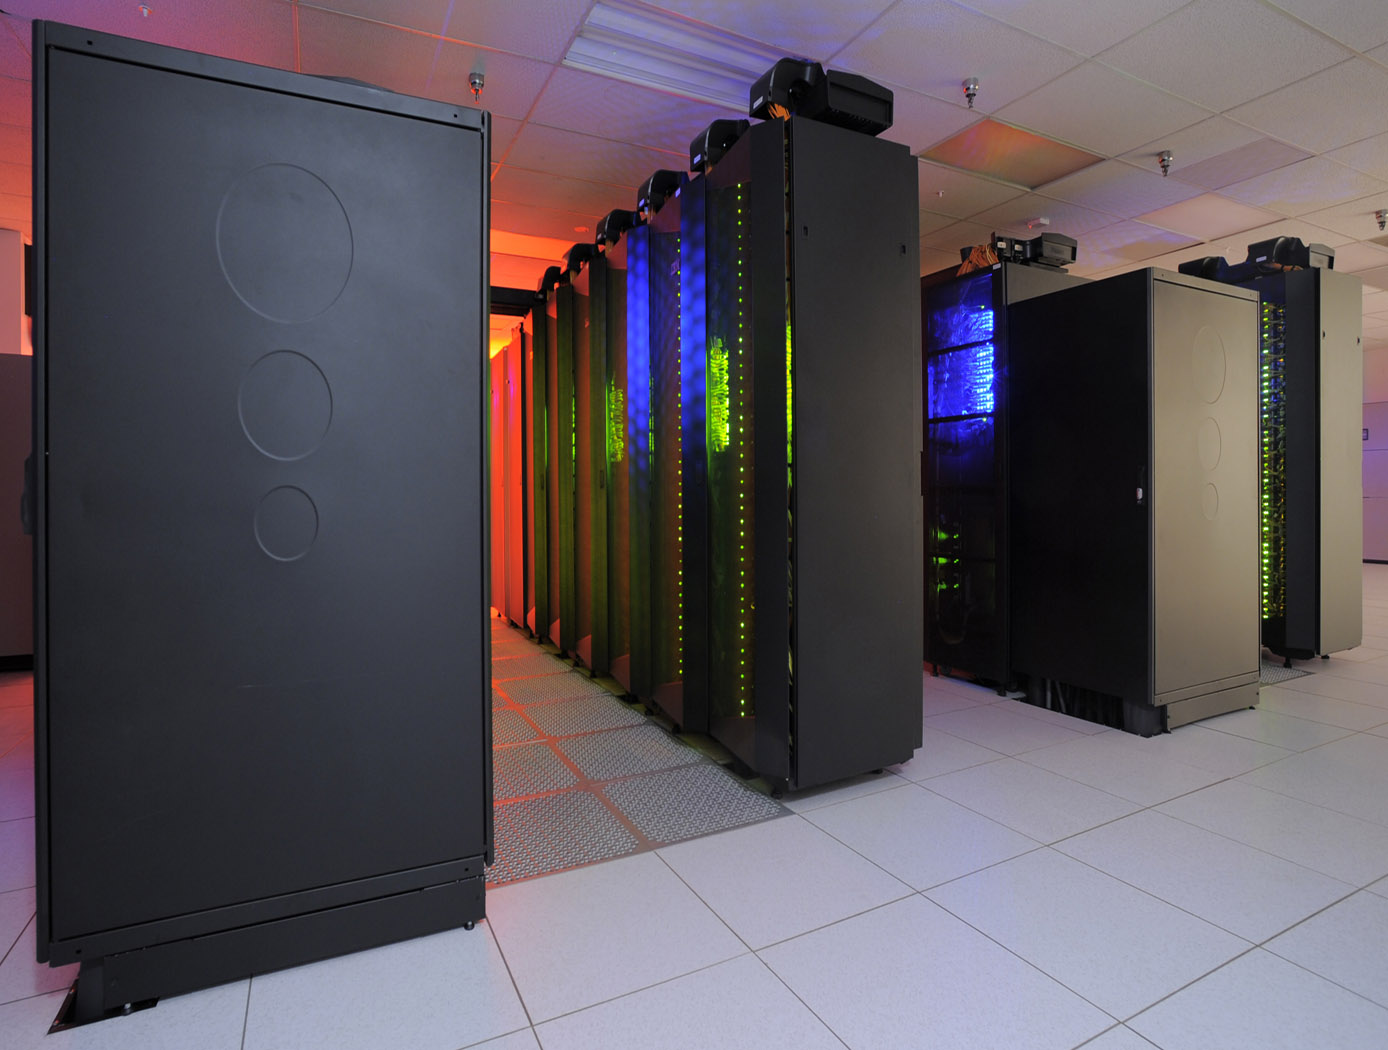 The heart of the NASA Center for Climate Simulation (NCCS) is the Discover supercomputer. In 2009, NCCS added more than 8,000 computer processors to Discover, for a total of nearly 15,000 processors.